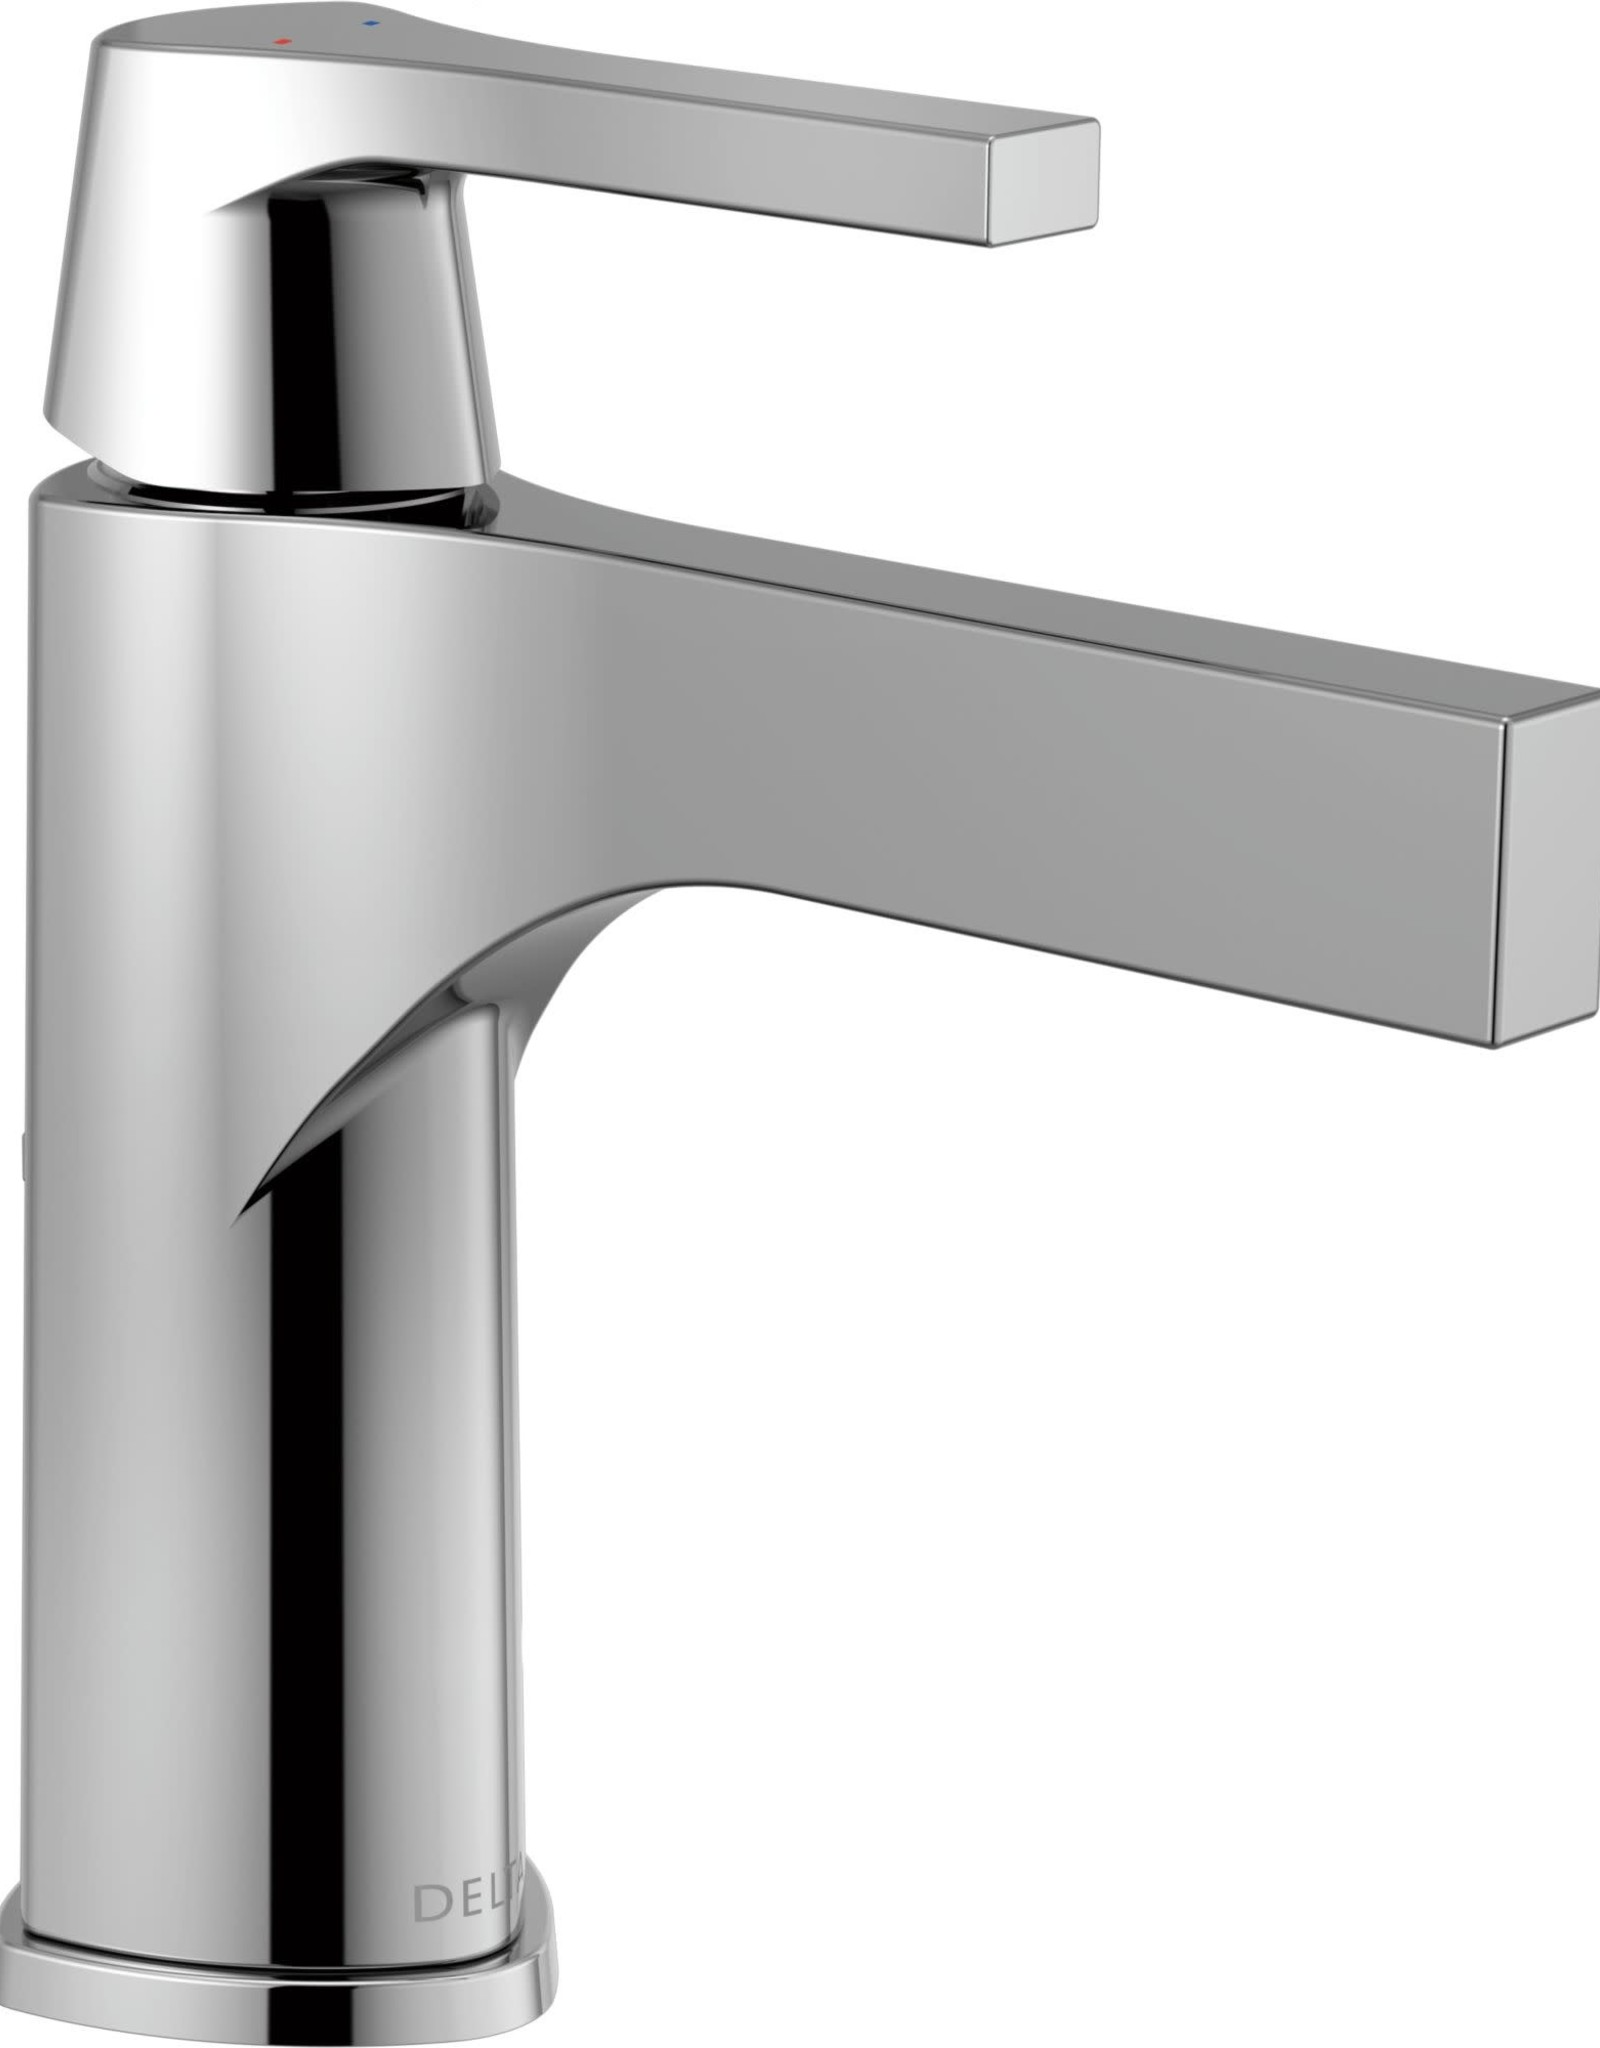 Delta Delta Zura Single Lav Faucet Chrome